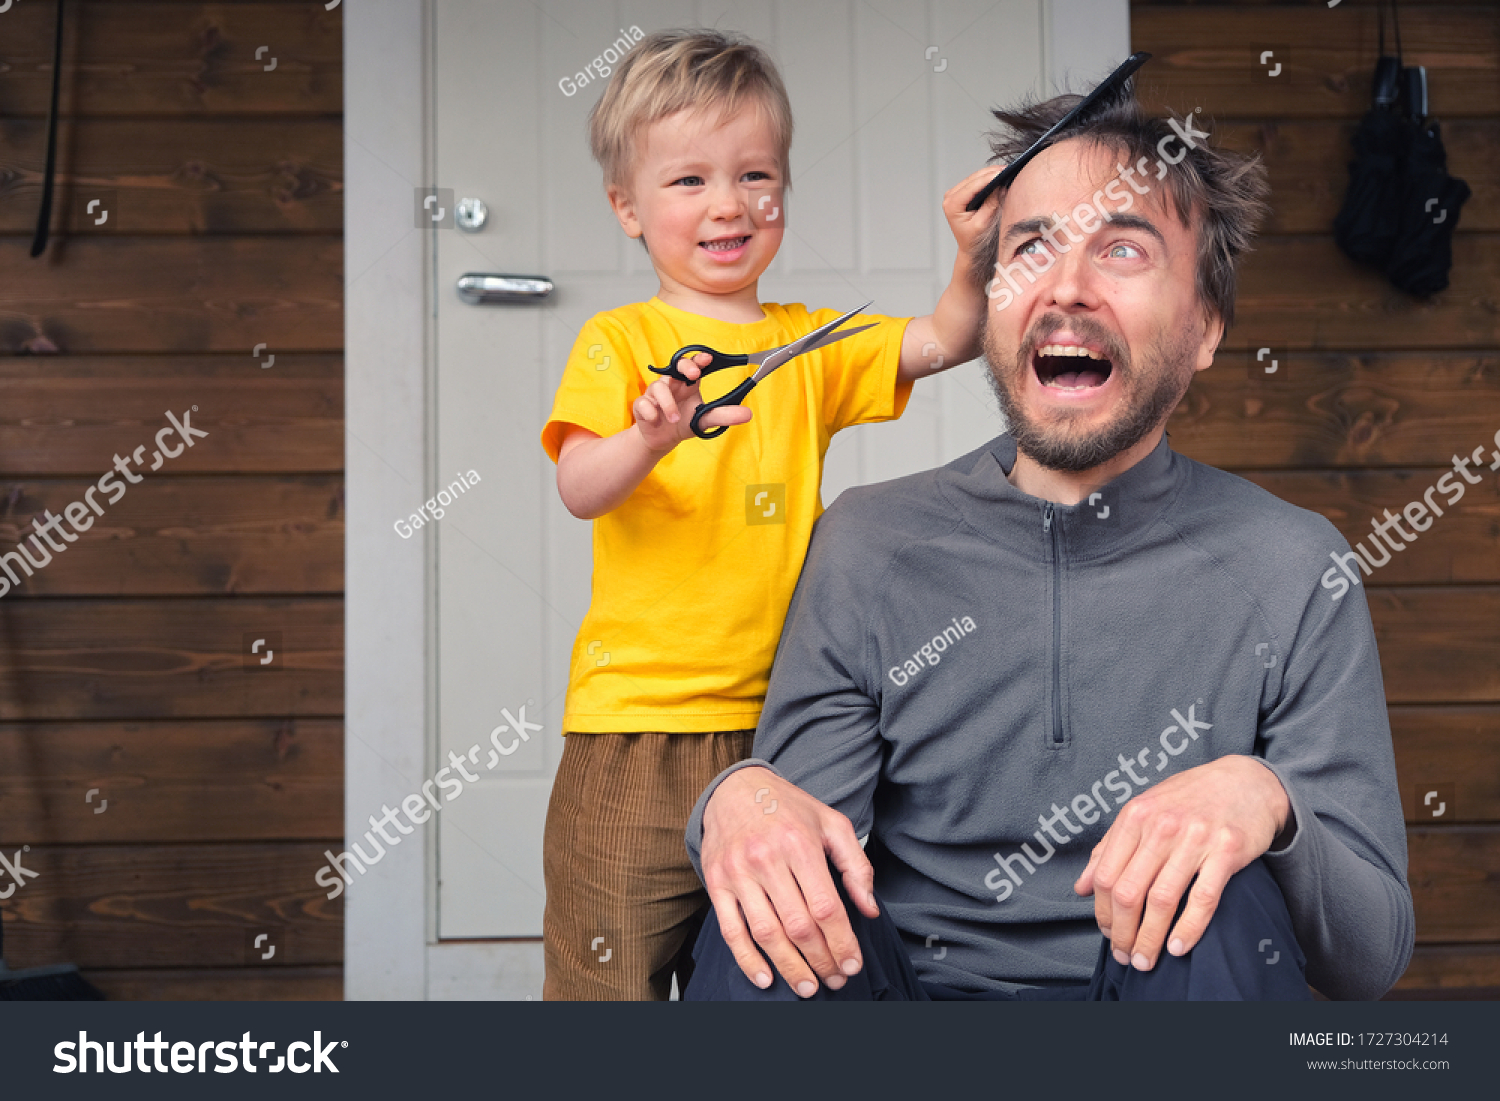 Funny child cutting hair to his father at home during quarantine lockdown. Little hairdresser barber makes haircut to his scared bearded dad. Beauty and selfcare at home lifestyle concept. #1727304214